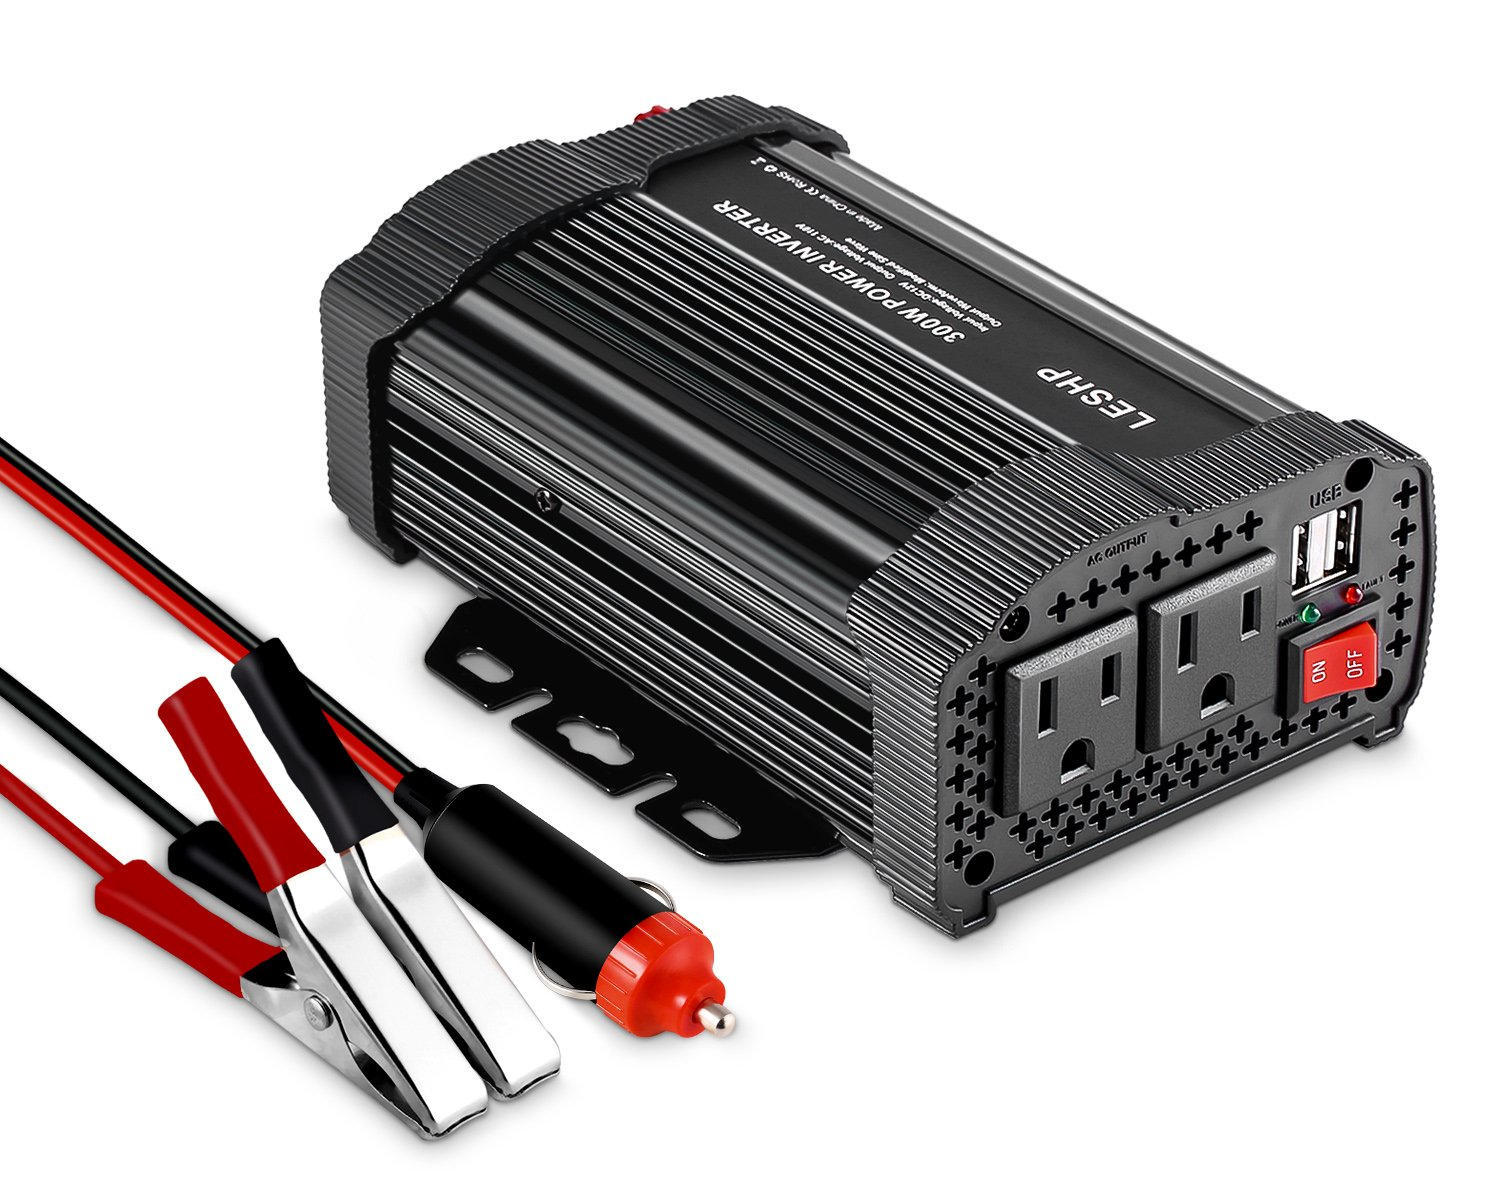 LESHP 400W Power Inverter DC 12V to AC 110V Car Adapter with 4.8A 2 USB Charging Ports by LESHP (Image #1)